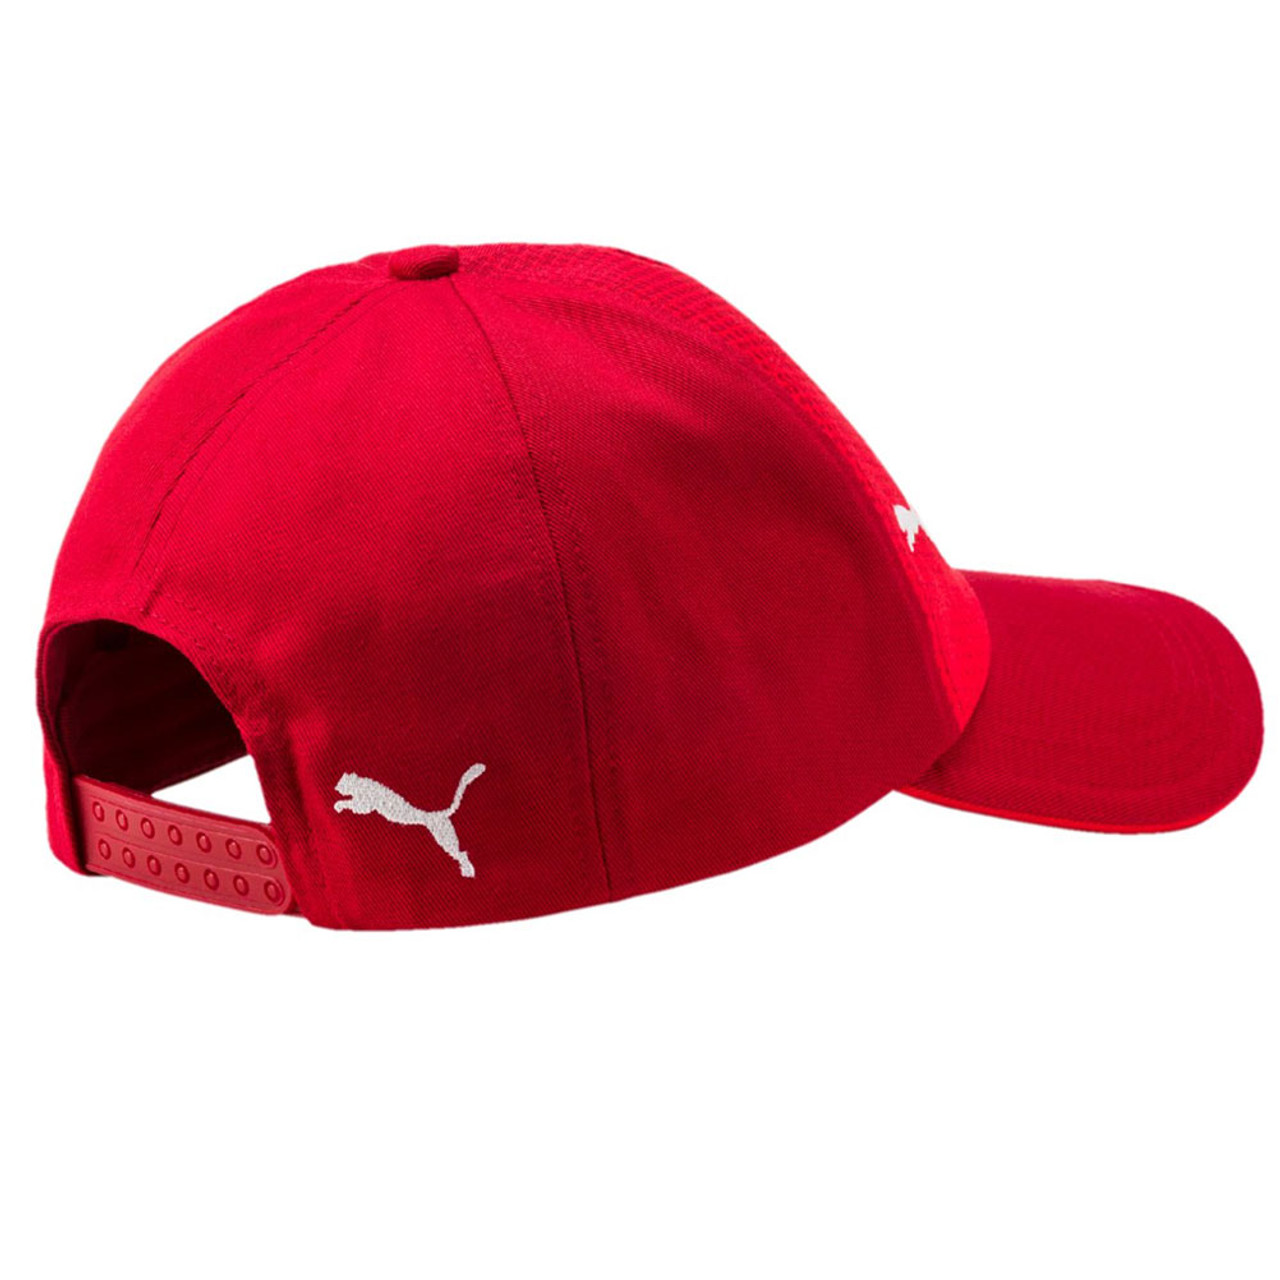 4c7e010508ac PUMA arsenal supporters football cap  red